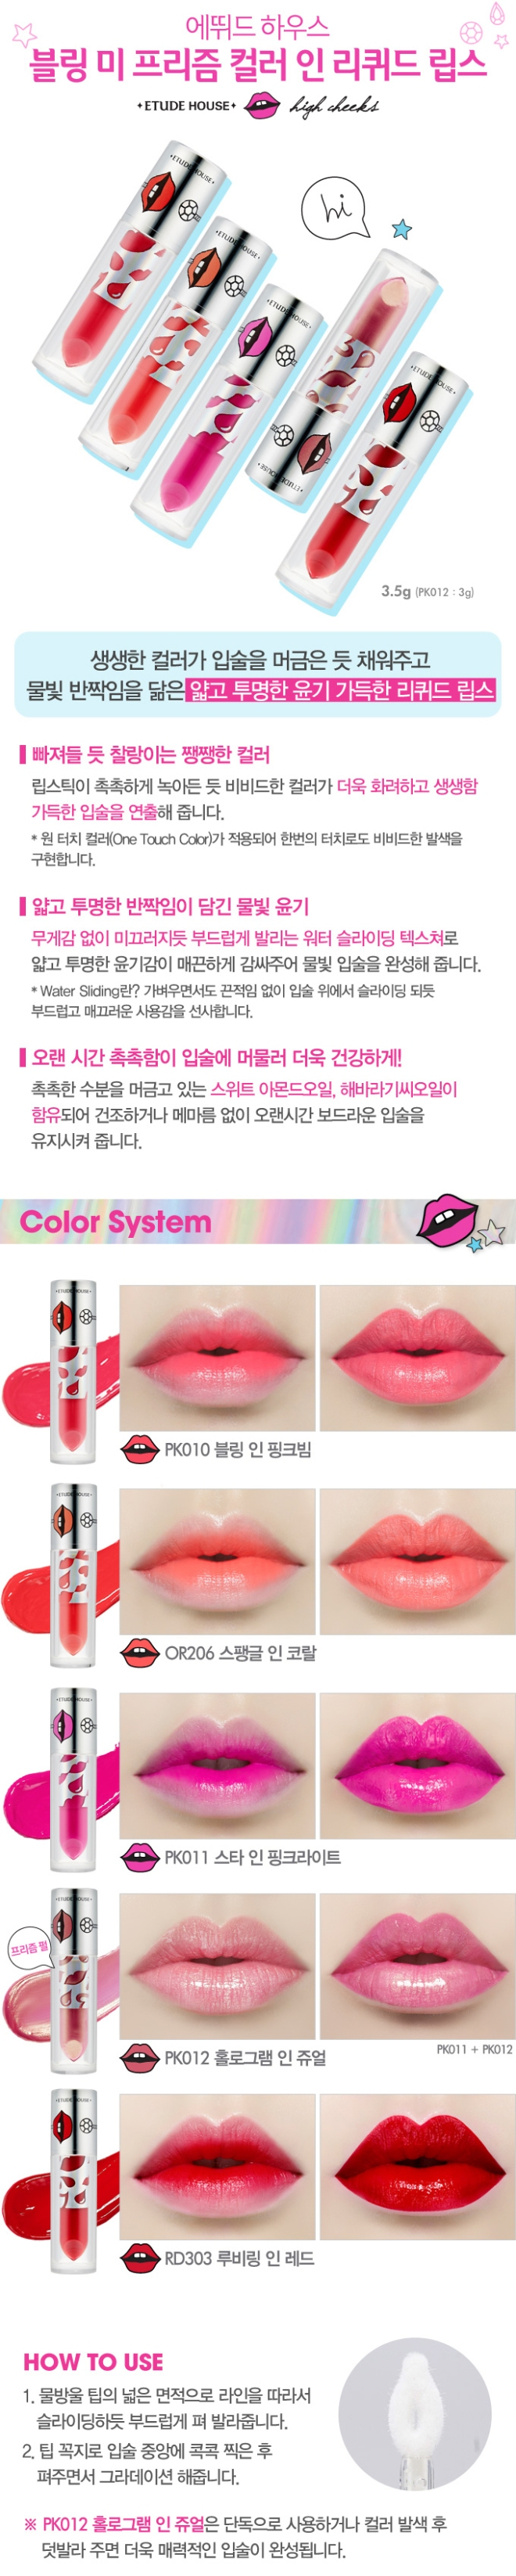 (Etude House x High Cheeks - Bling Me Prism Color in Liquid Lips) Credit: Etude House Korea website